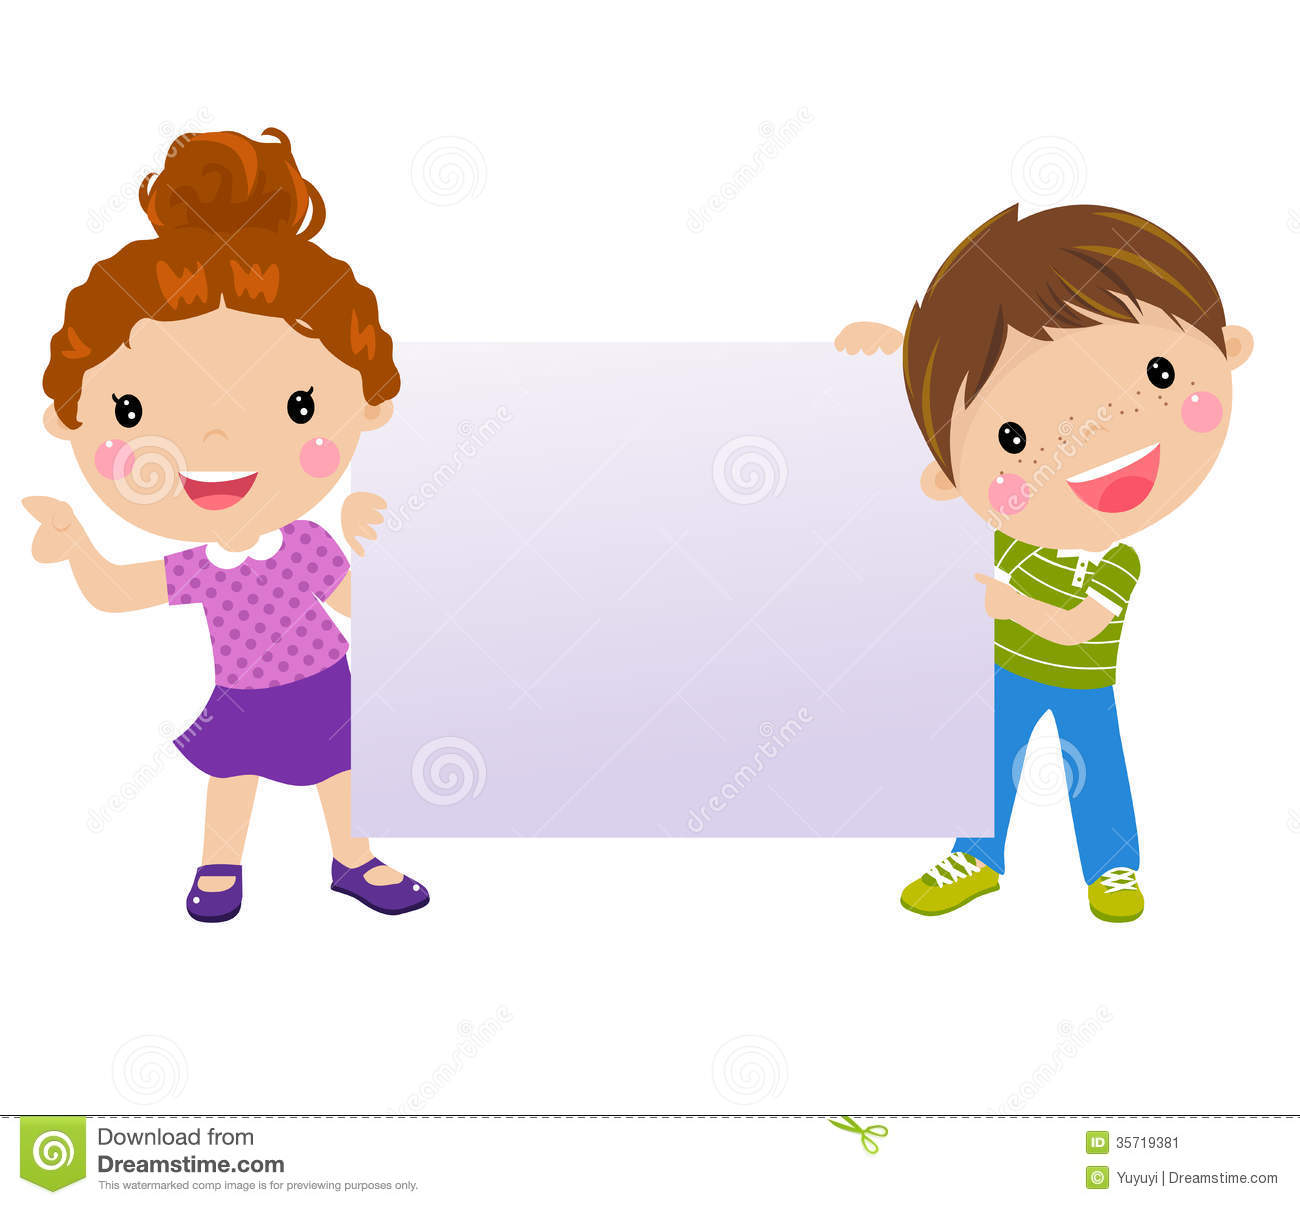 Kids And Banner Stock Image - Image: 35719381